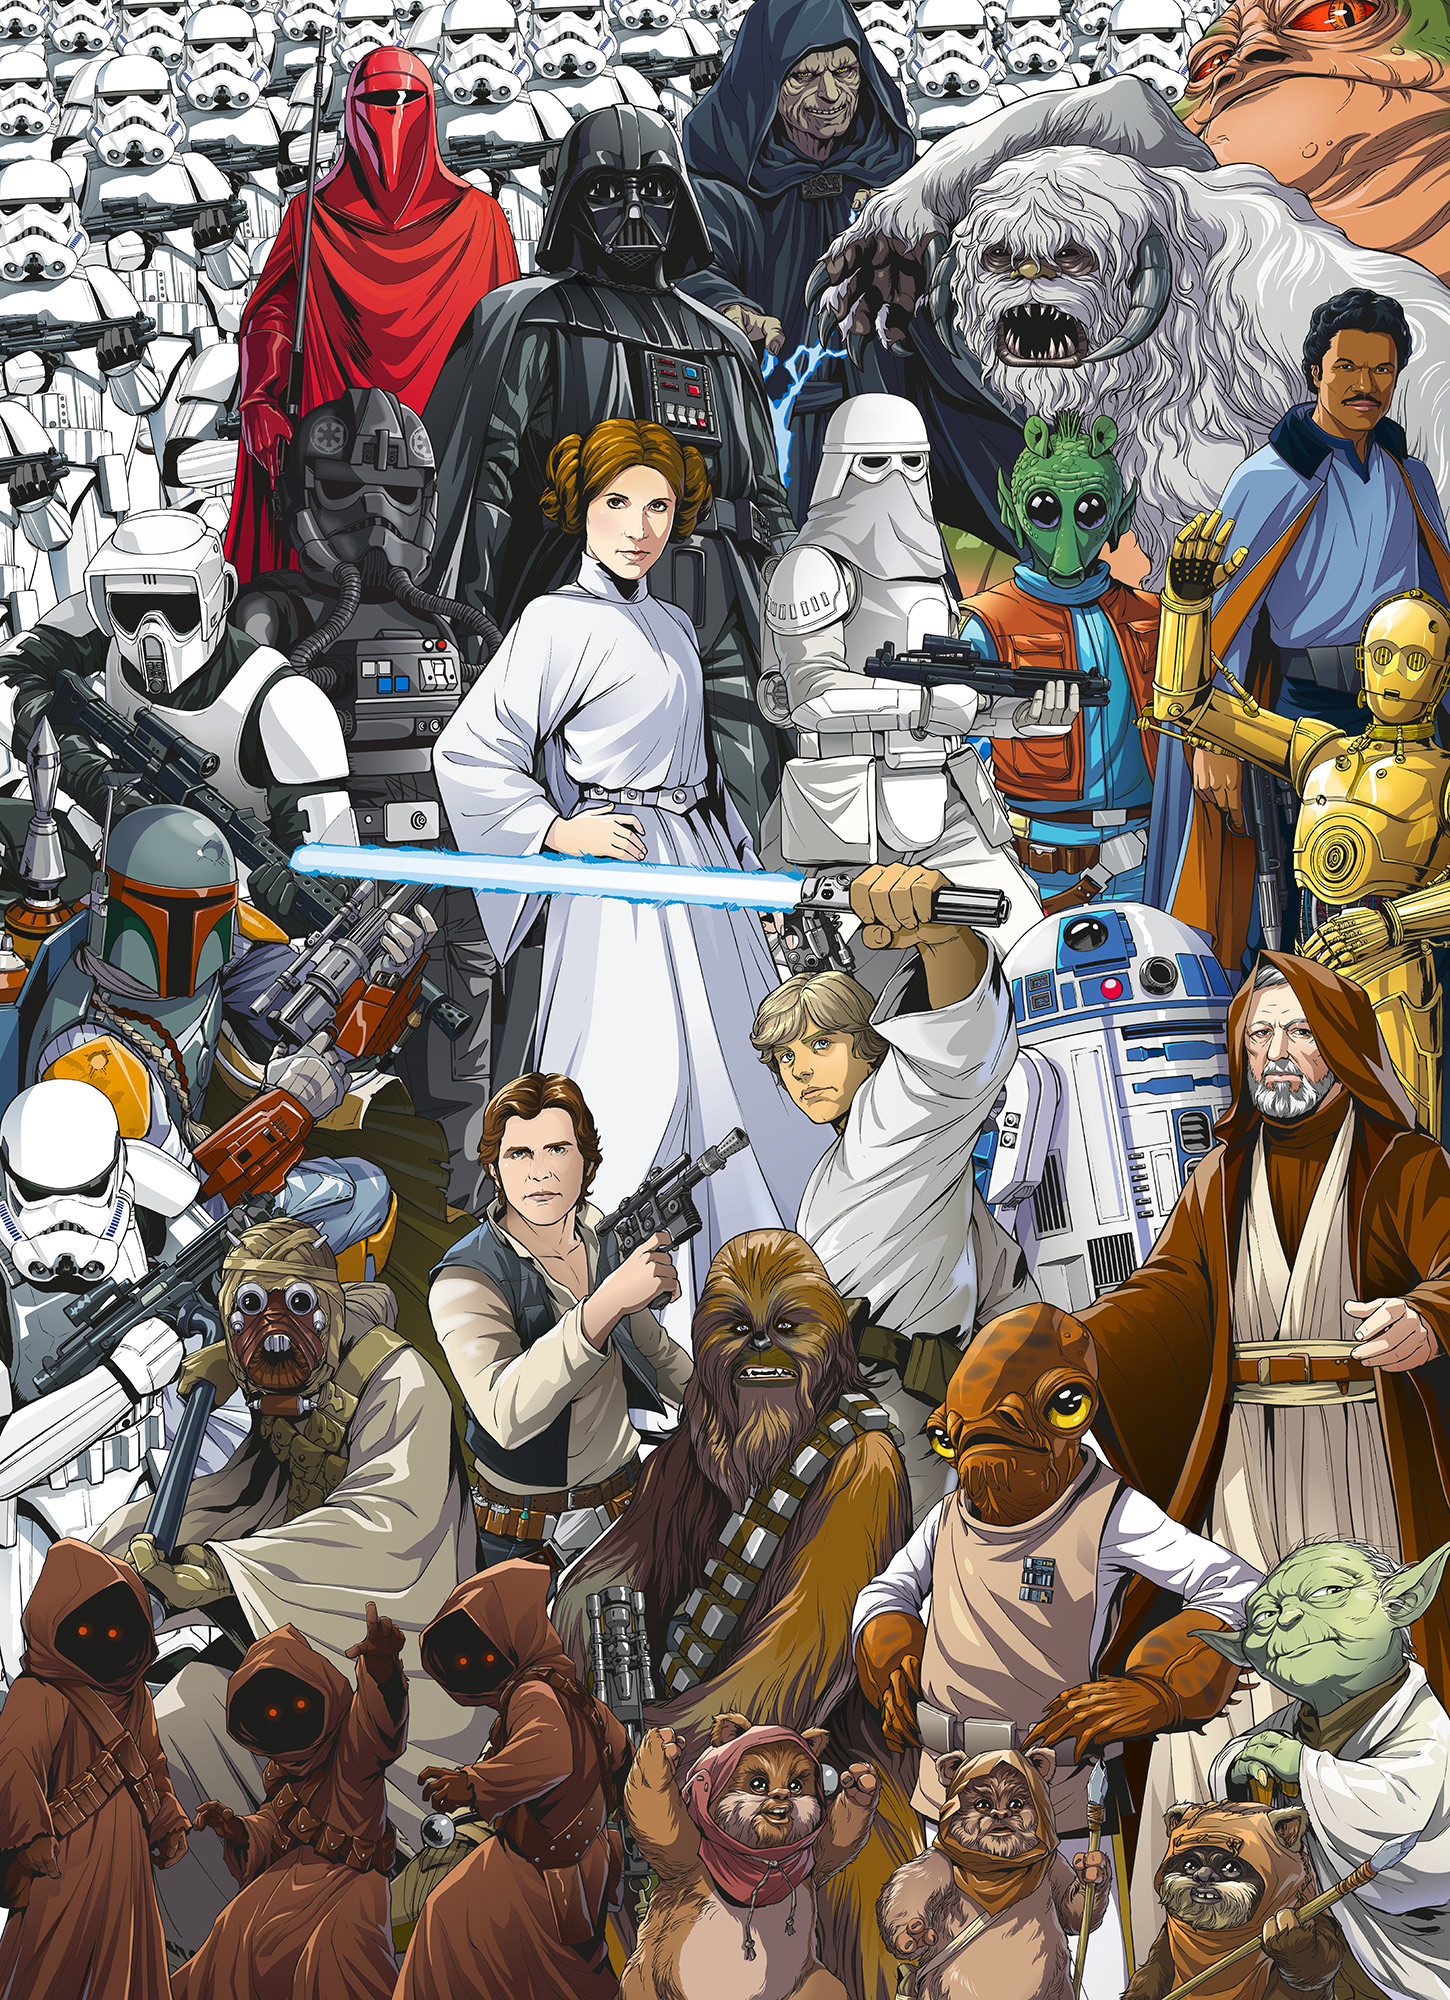 Photomural Star Wars Classic Cartoon Collage 4 4111 From